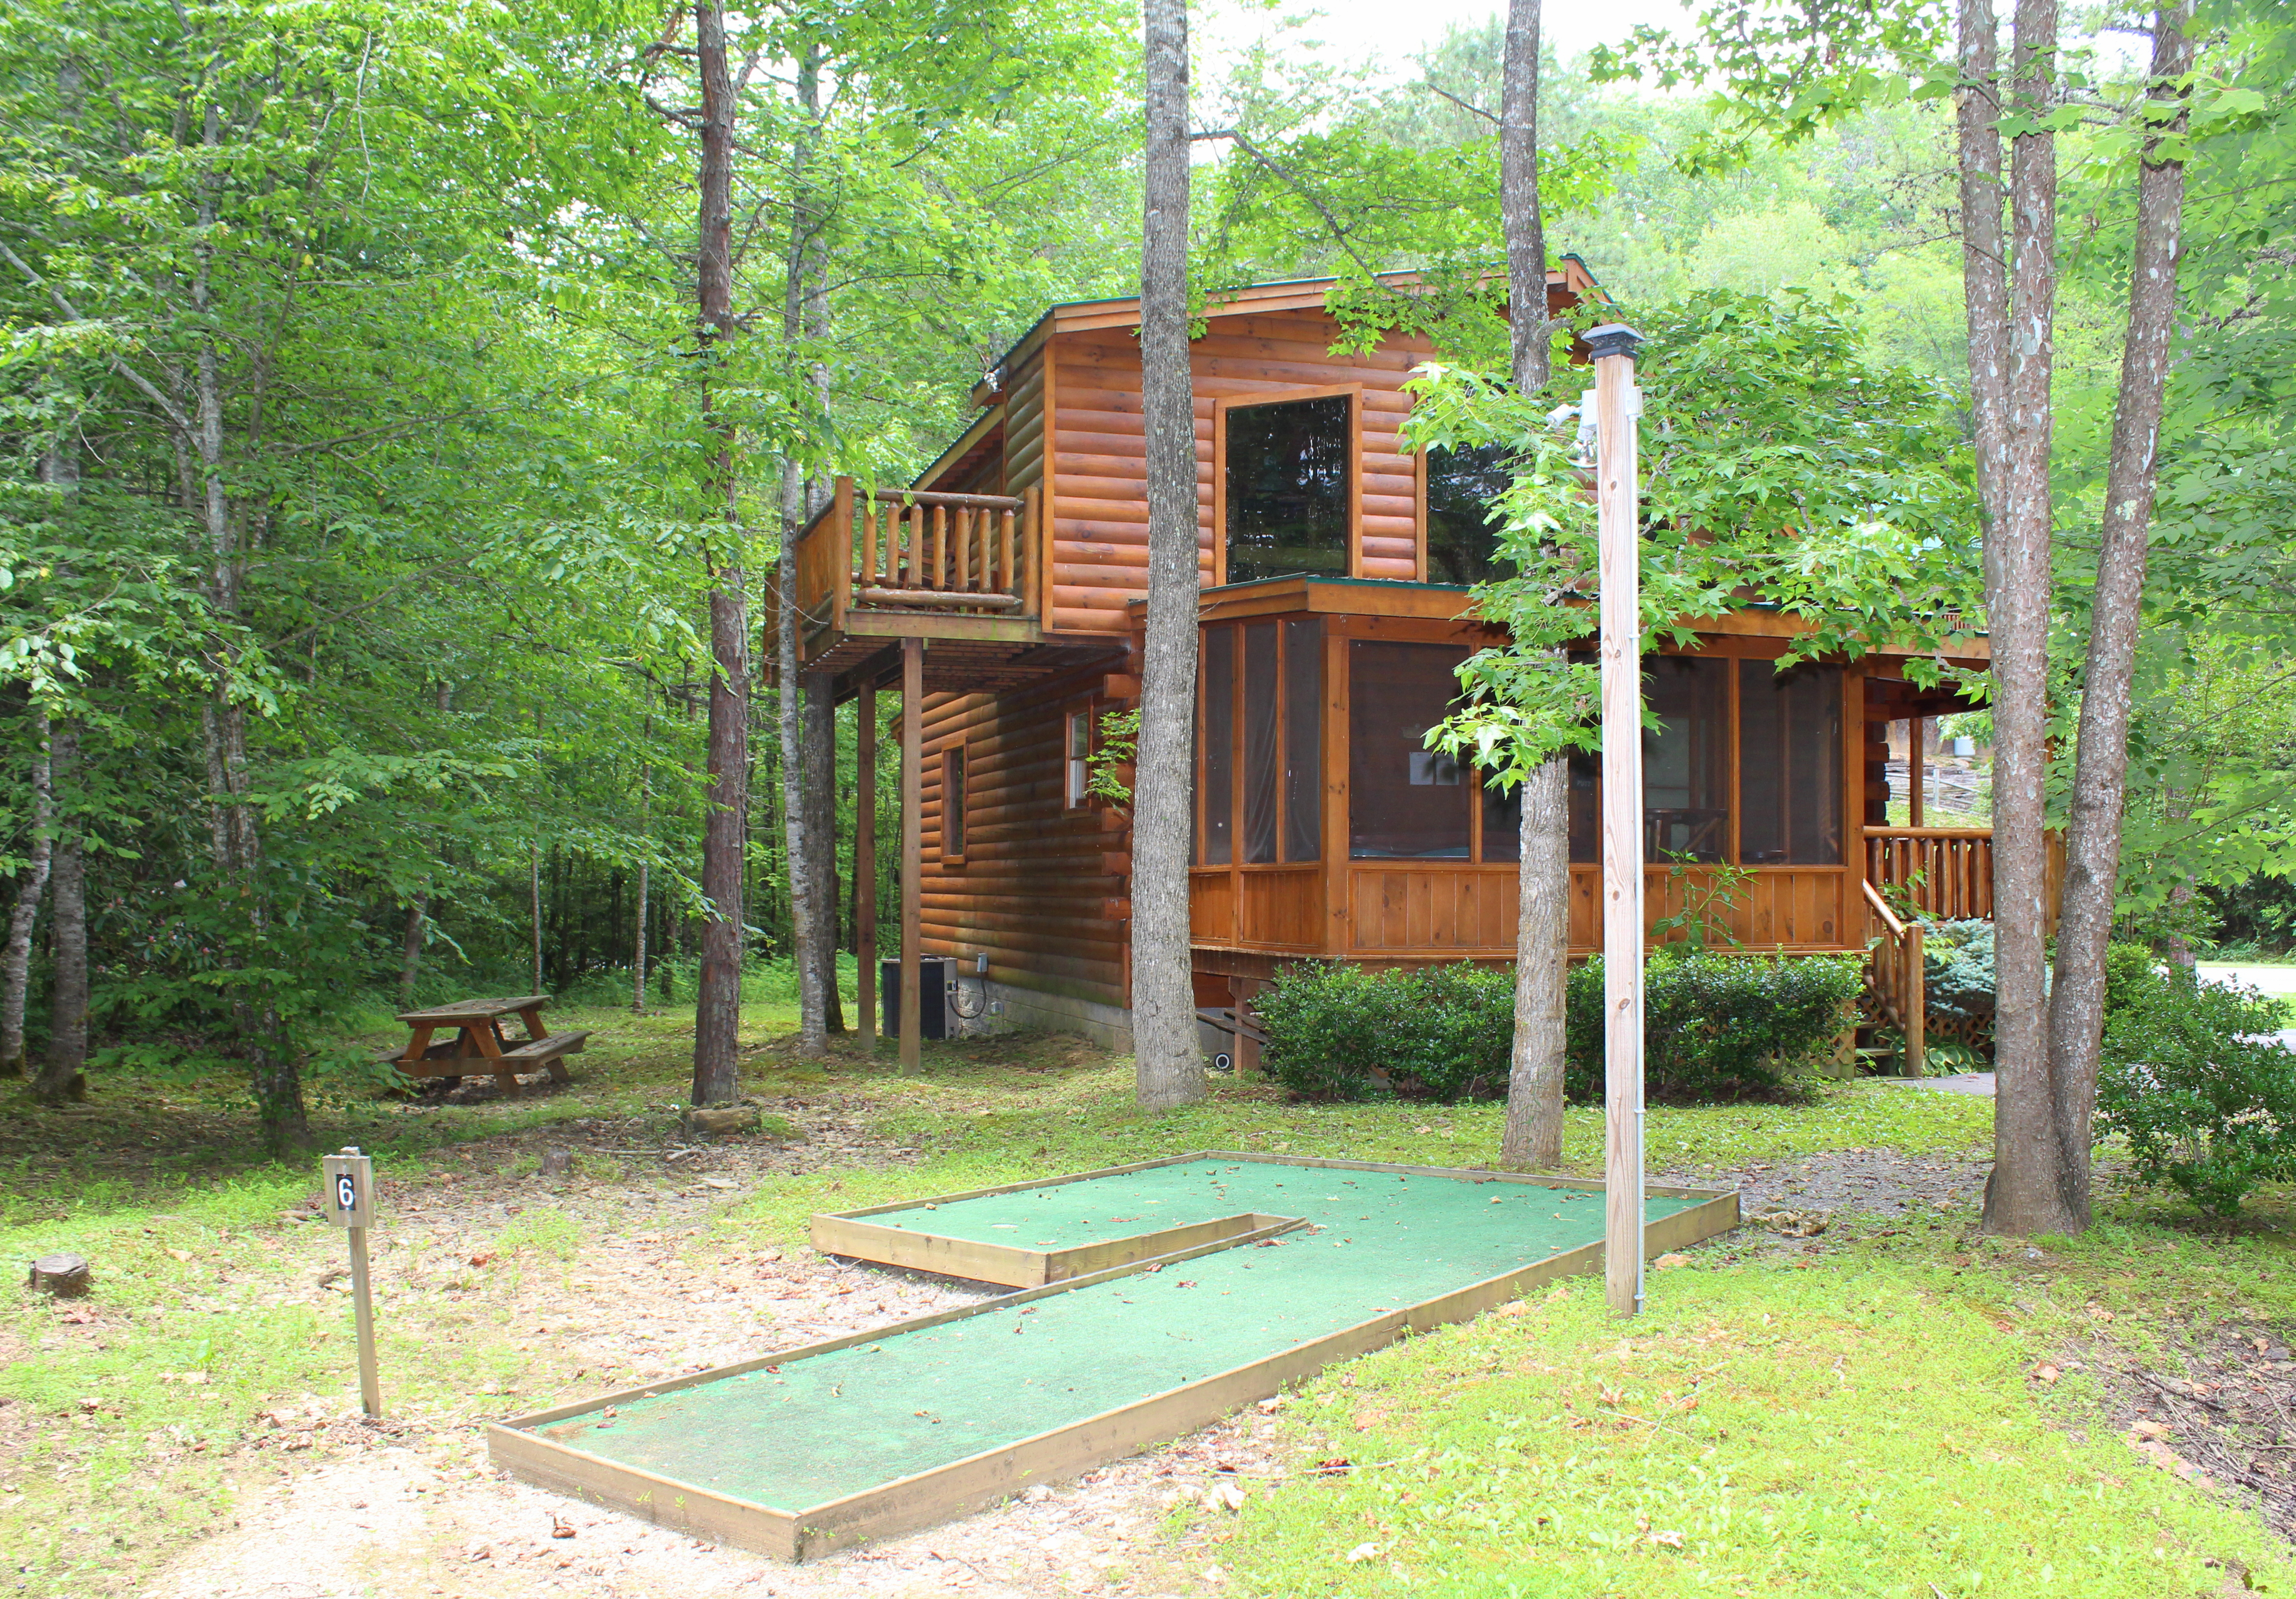 cabins realestate fall content generalservices pdf cabin dam tn inn falls creek rfps rentals